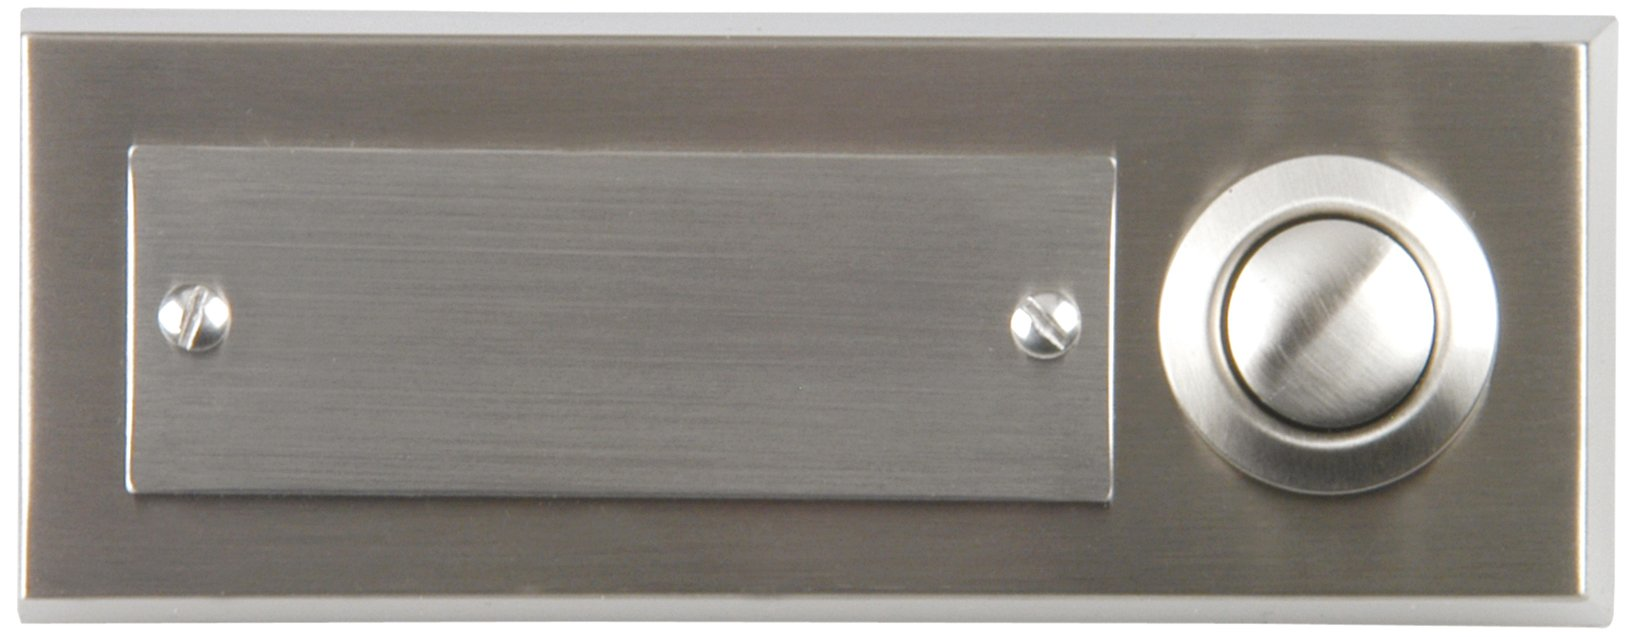 Unitec 41104 Surface-Mounted Door Bell Push Button 1-Channel Stainless Steel